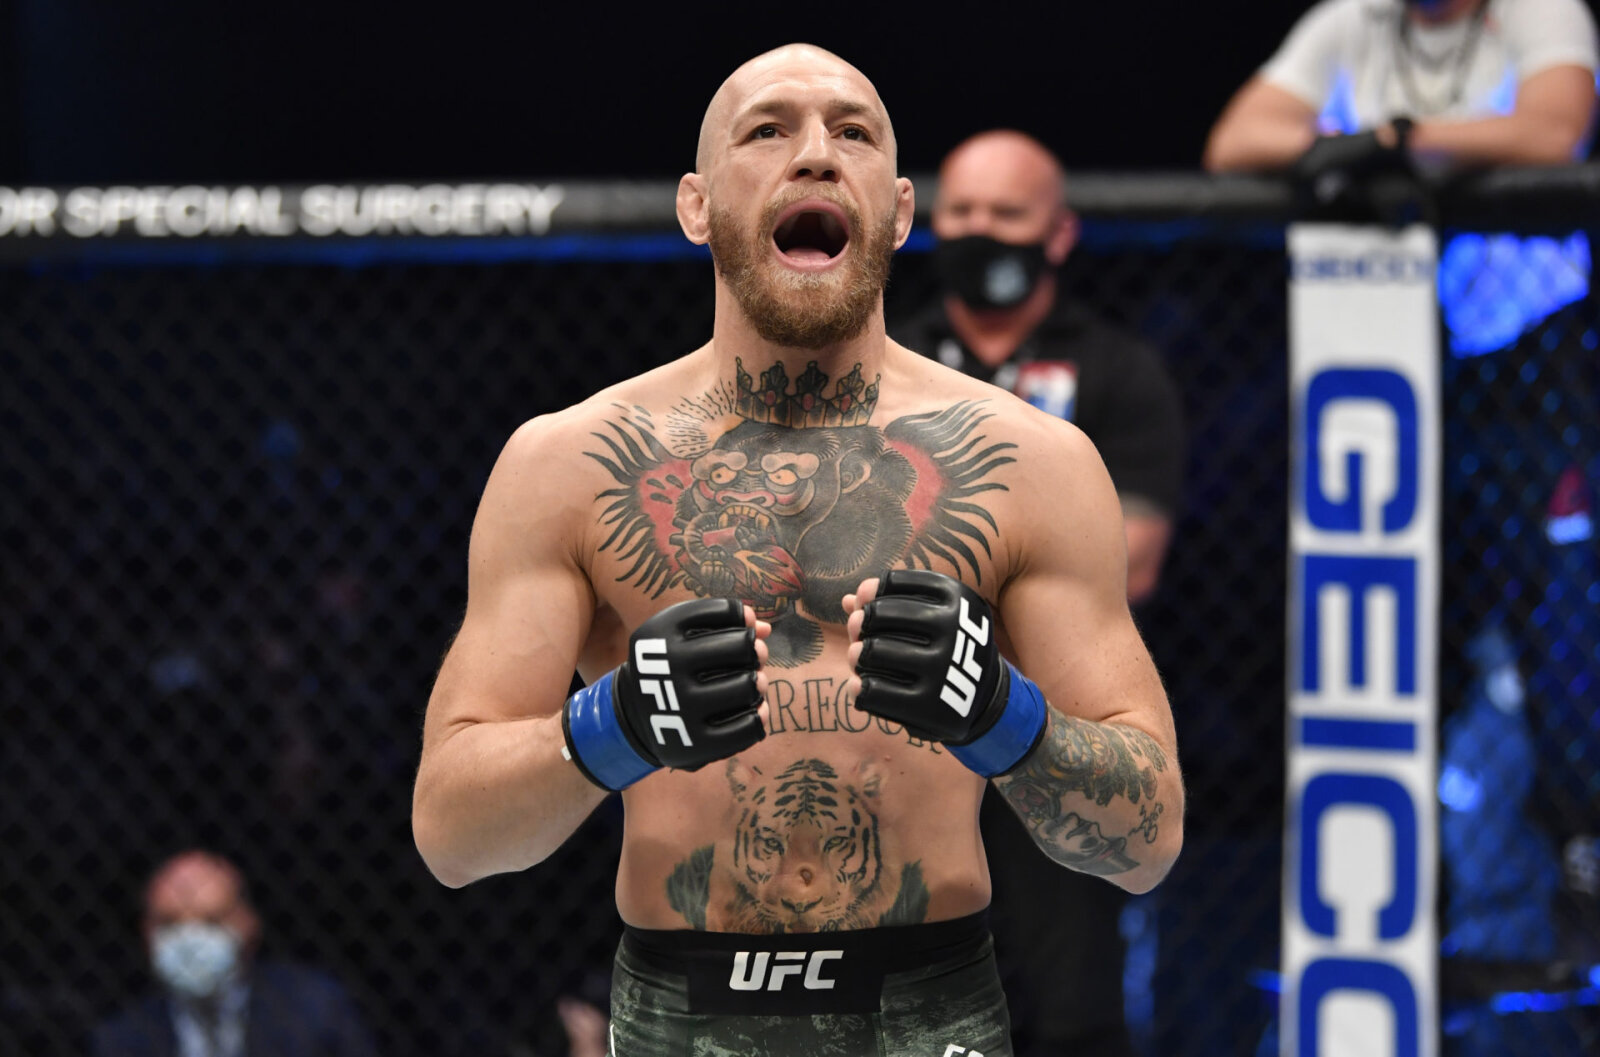 Where Does Conor McGregor Come From? Nationality, Ethnicity and Religion